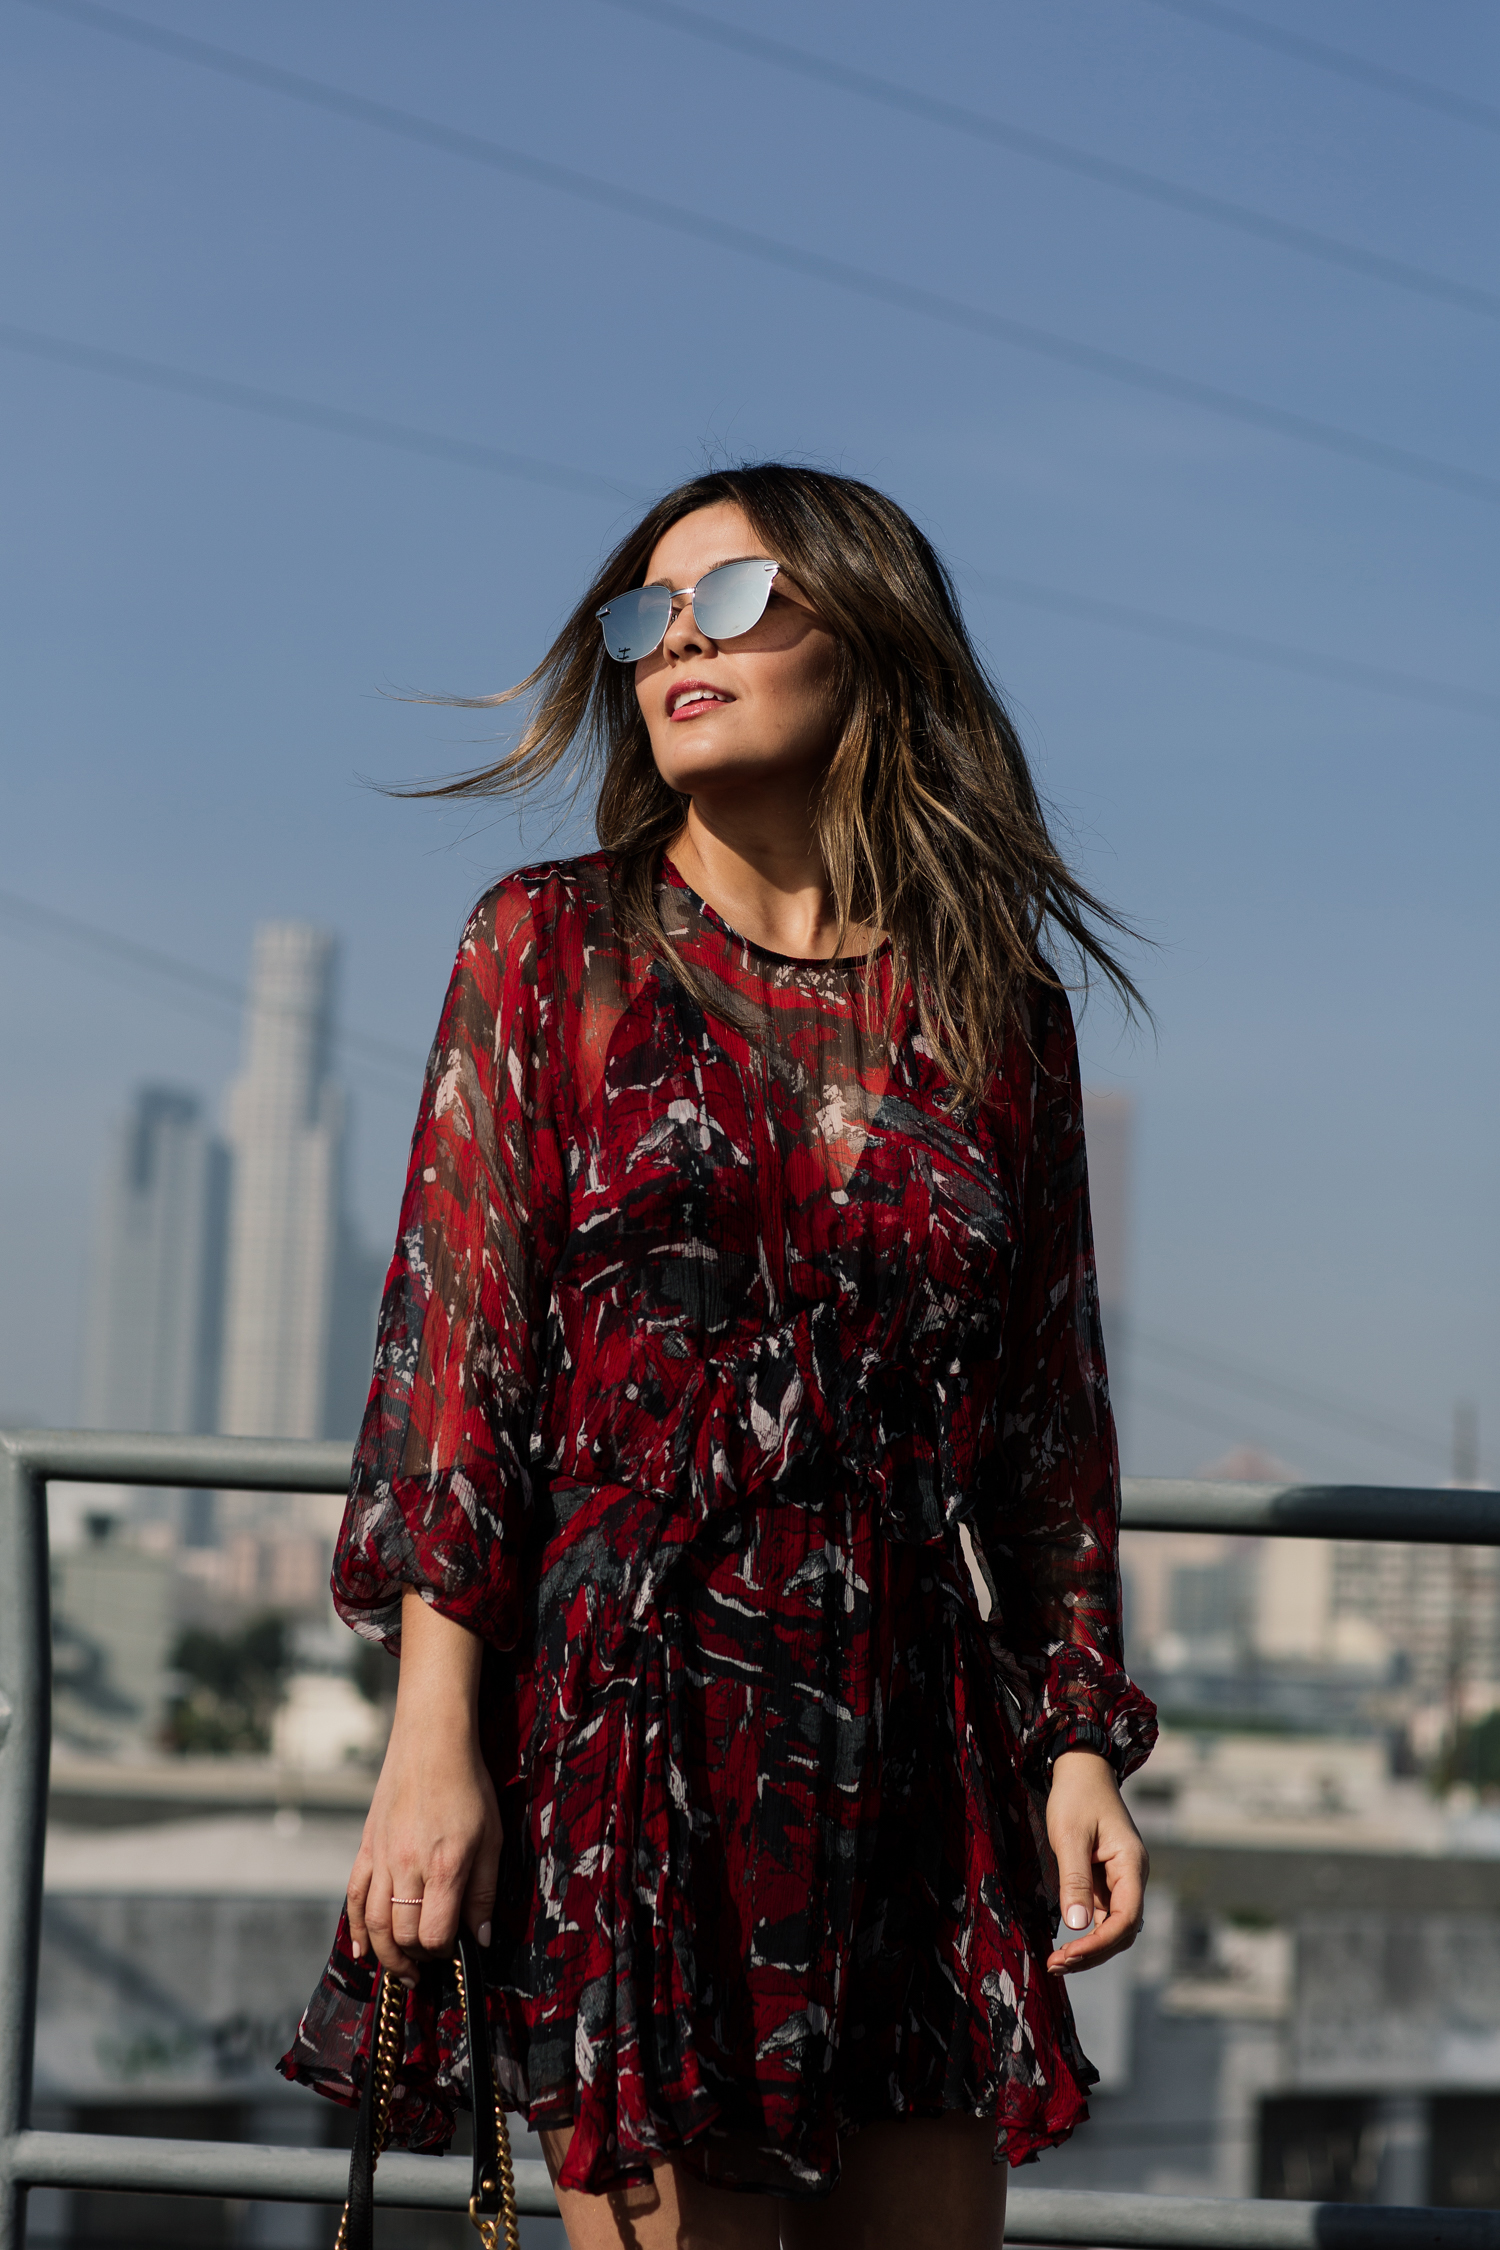 Brunette woman, blogger Sara Azani of Style MBA poses outside in front of a cityscape during the daytime wearing an IRO little red dress, Gucci GG Marmont quilted leather shoulder bag with gold hardware, Chloé Susanna Stud Buckle Booties.